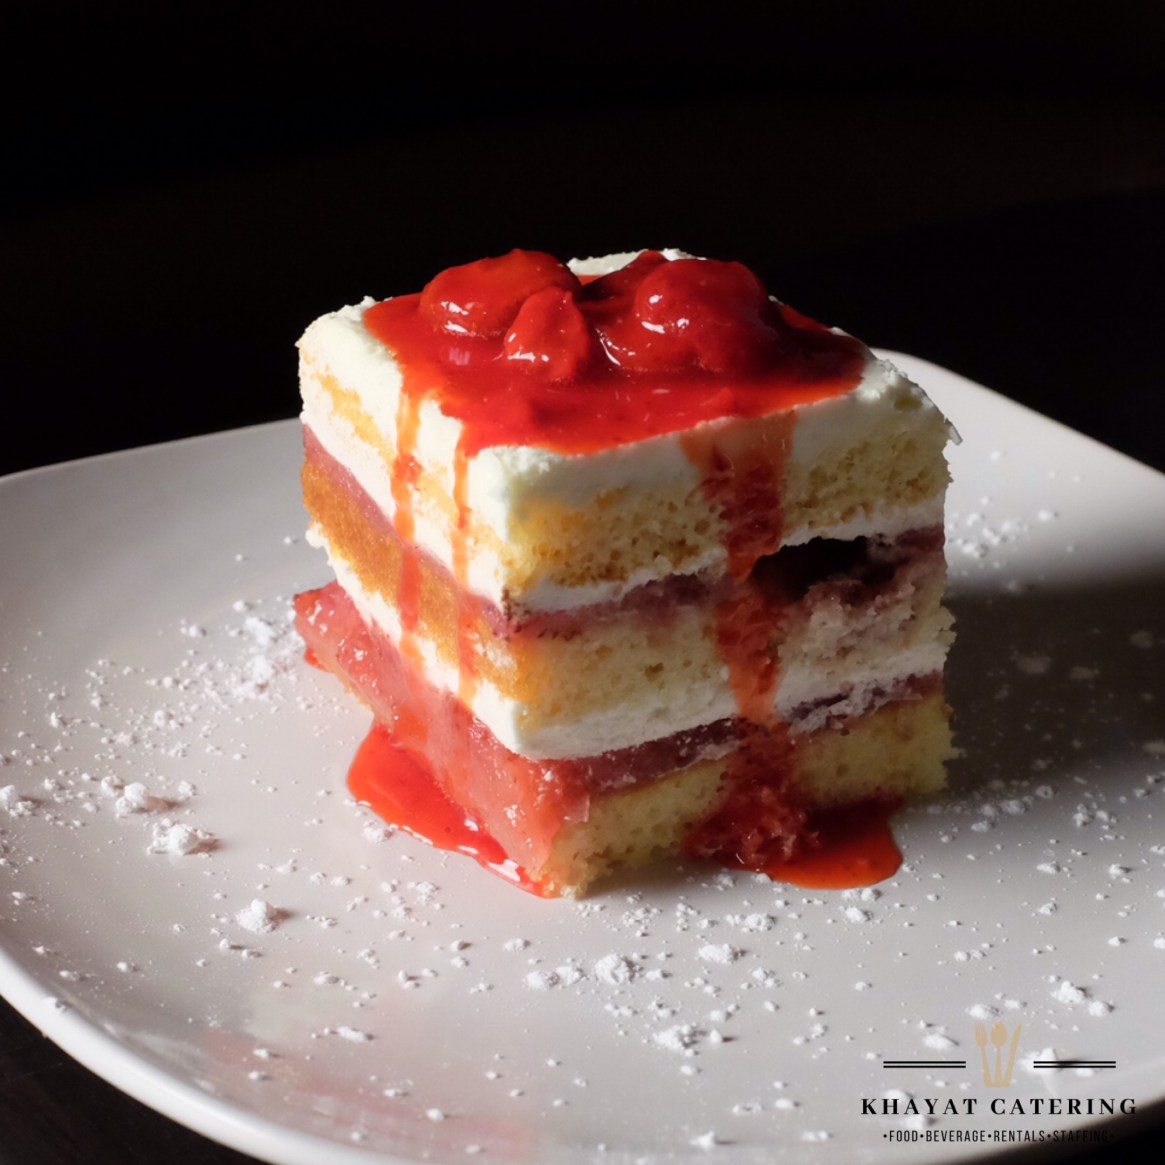 Khayat Catering tres leches strawberry shortcake